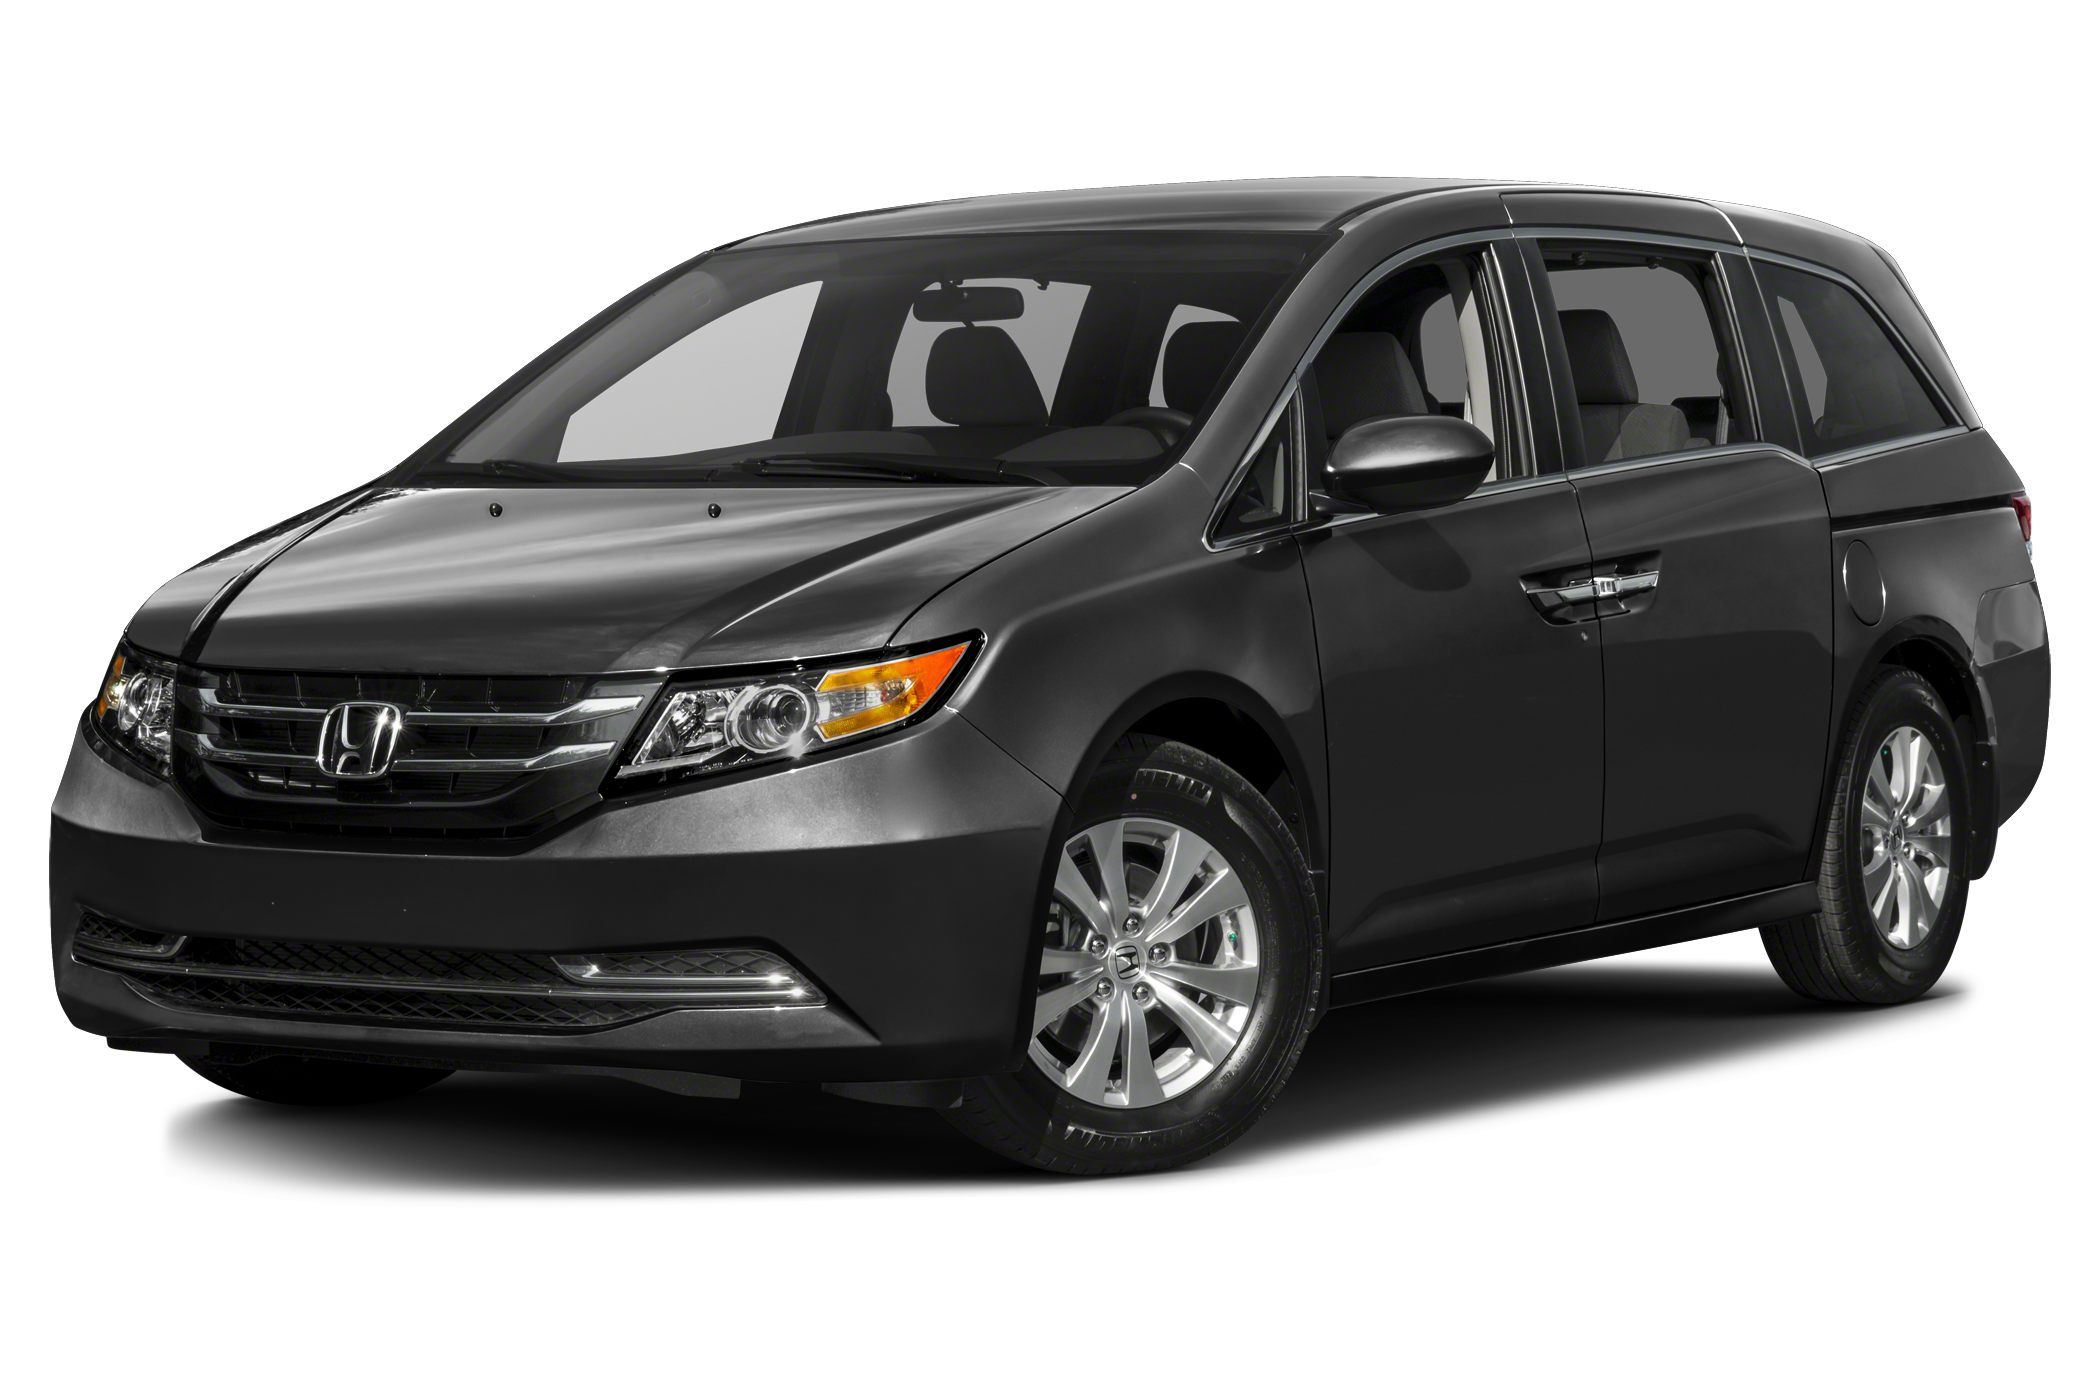 2016 Honda Odyssey SE Get a grip with amazing traction control Sticking power with super traction